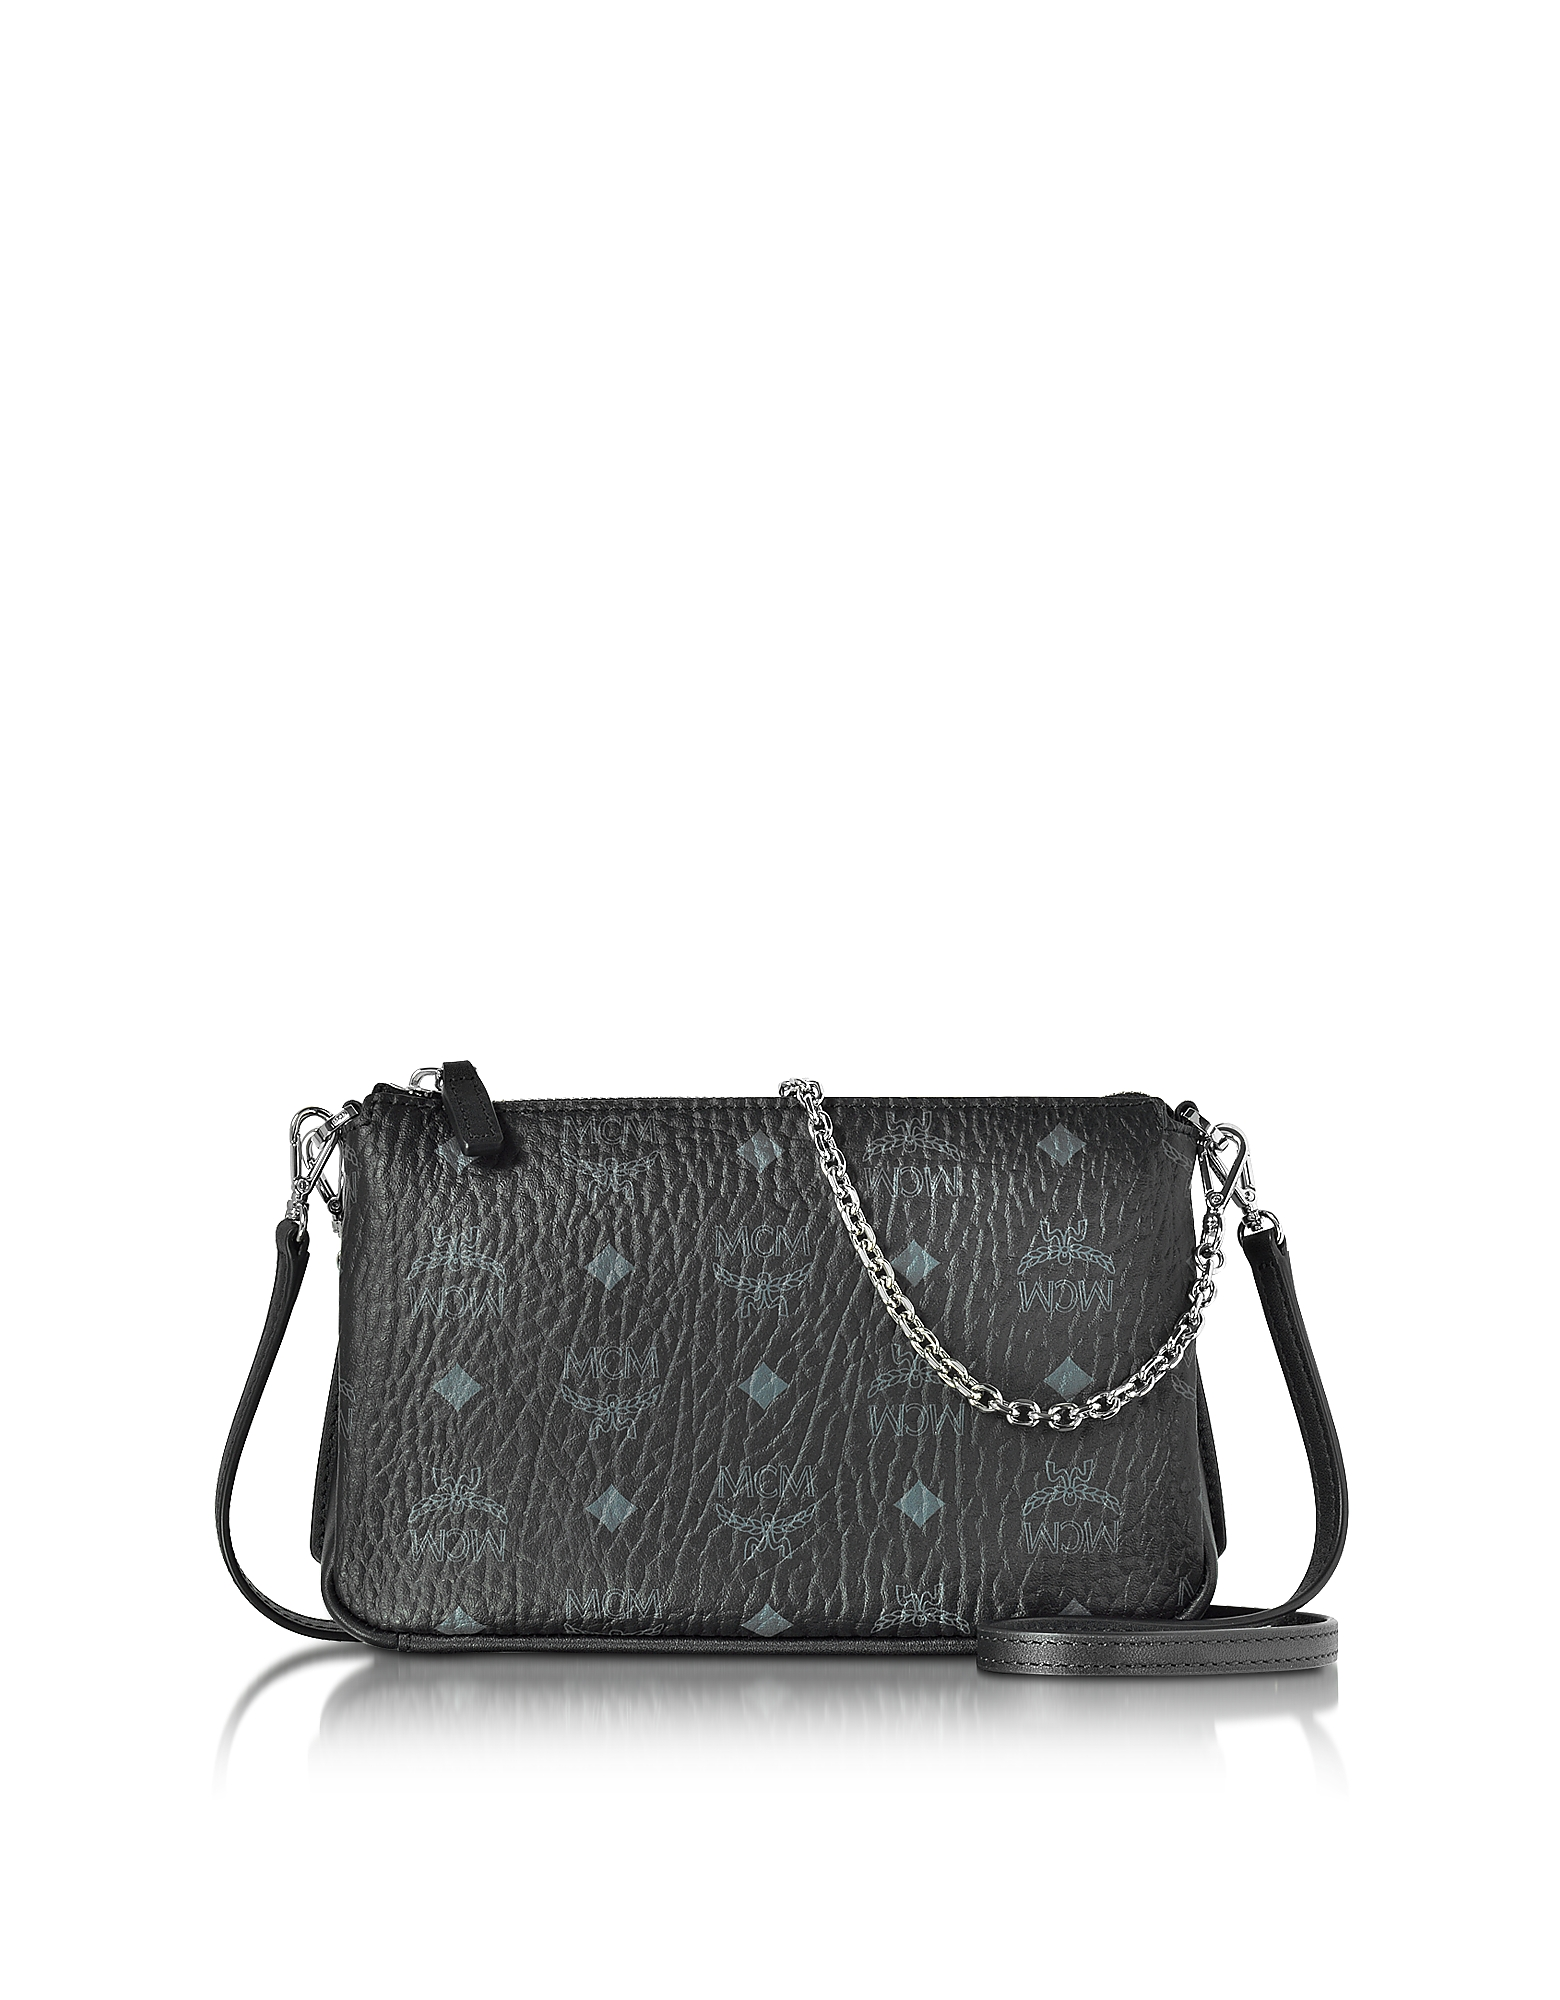 MCM Handbags, Millie Visetos Black Medium Zip Crossbody Bag